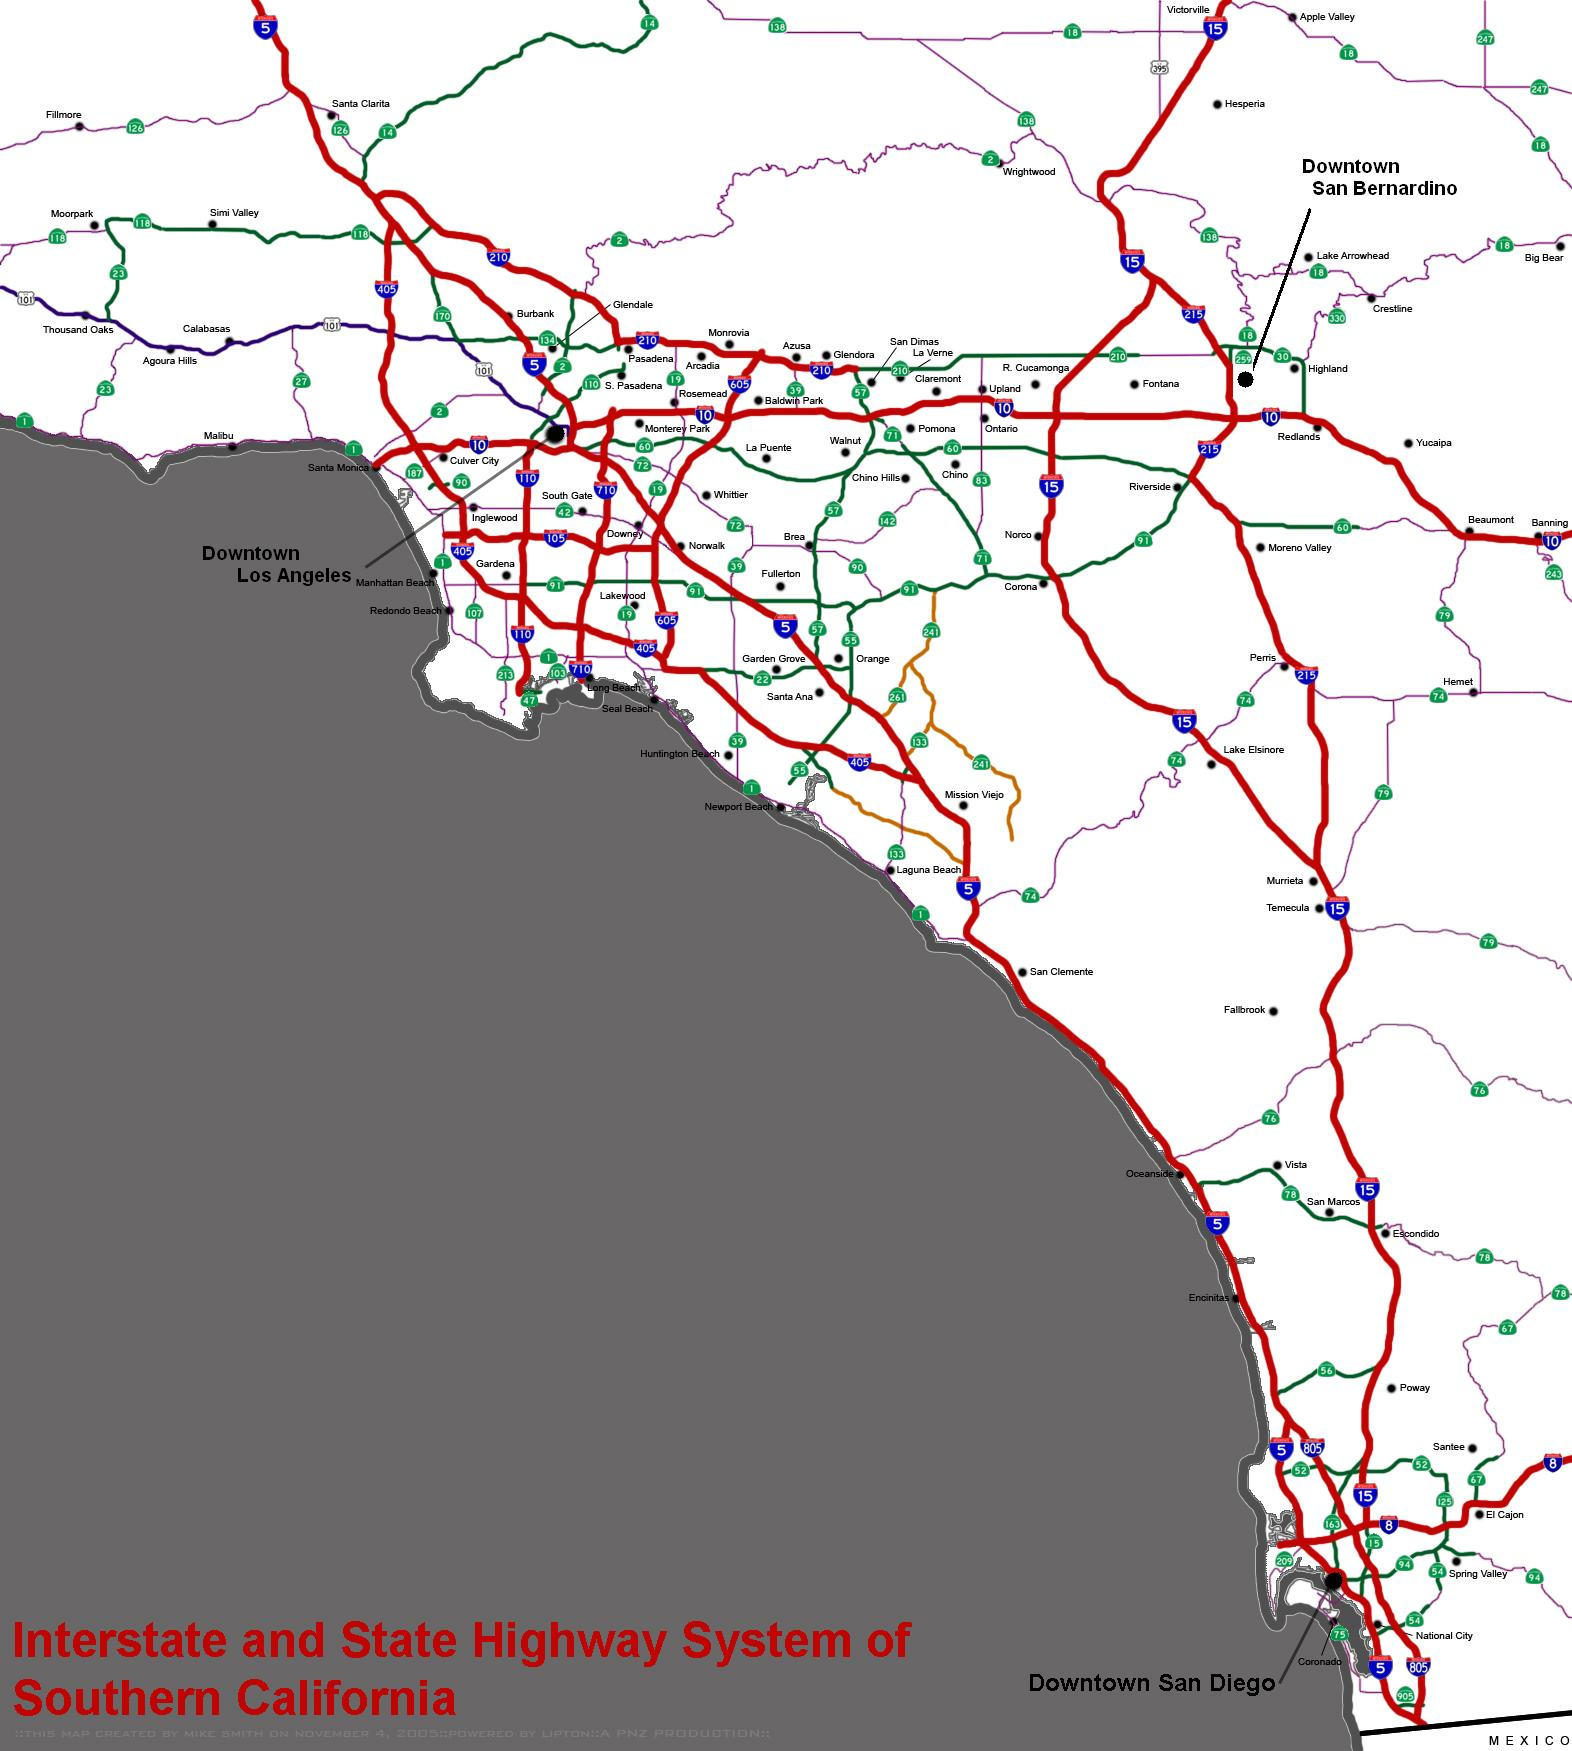 Southern California freeways - Wikipedia on cal train map, cal zip code map, cal freeway map, northern cal map, cal fire map, cal coast map, cal city map, cal map highways, cal county map,